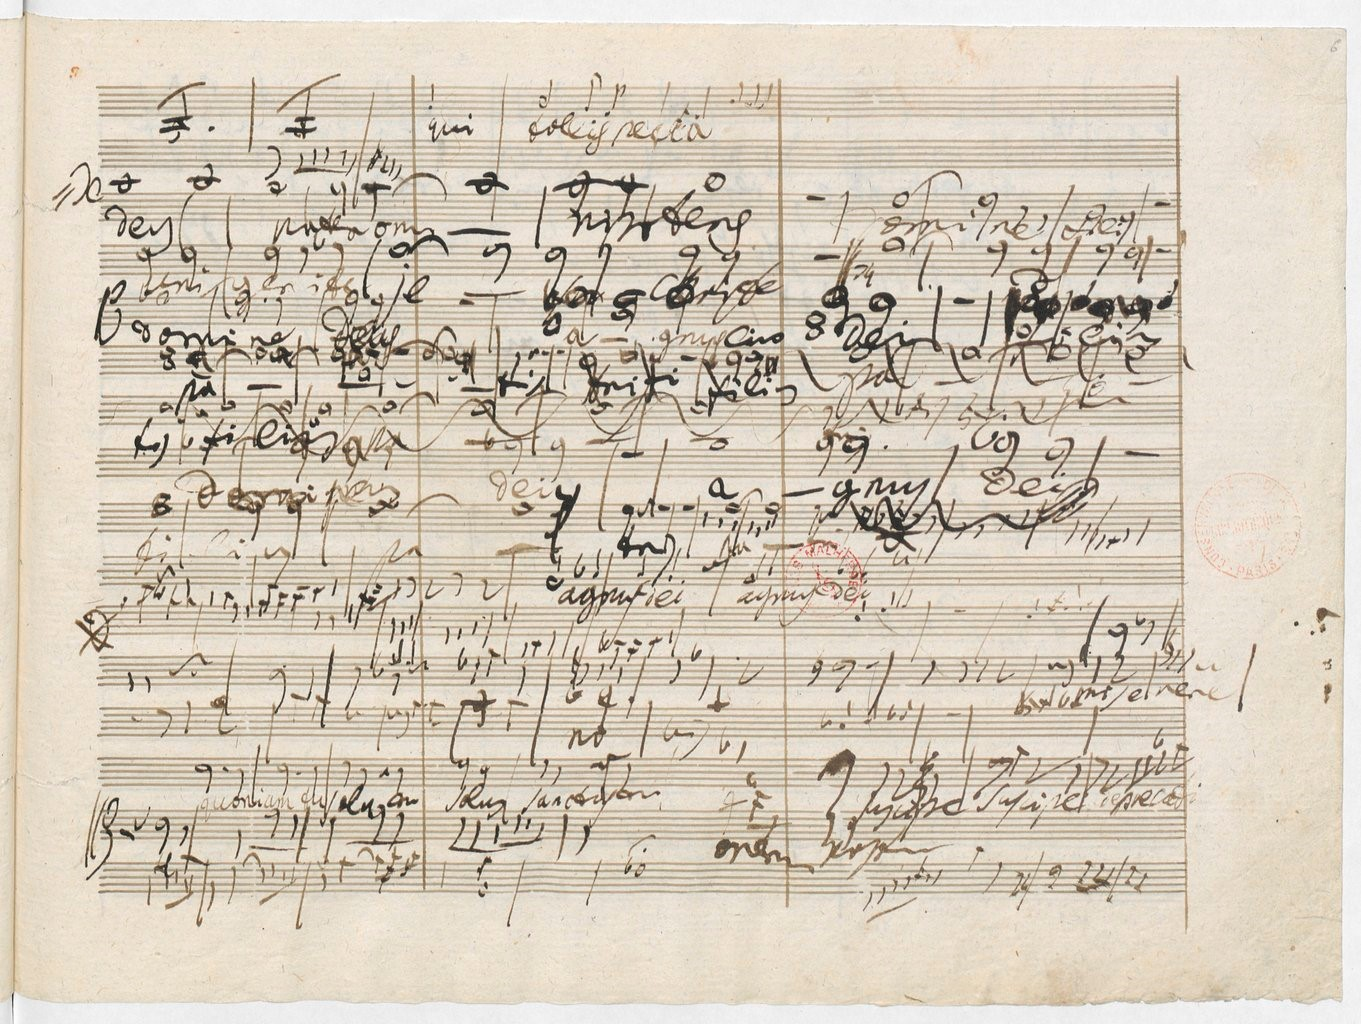 Lined paper with scribbled musical notes